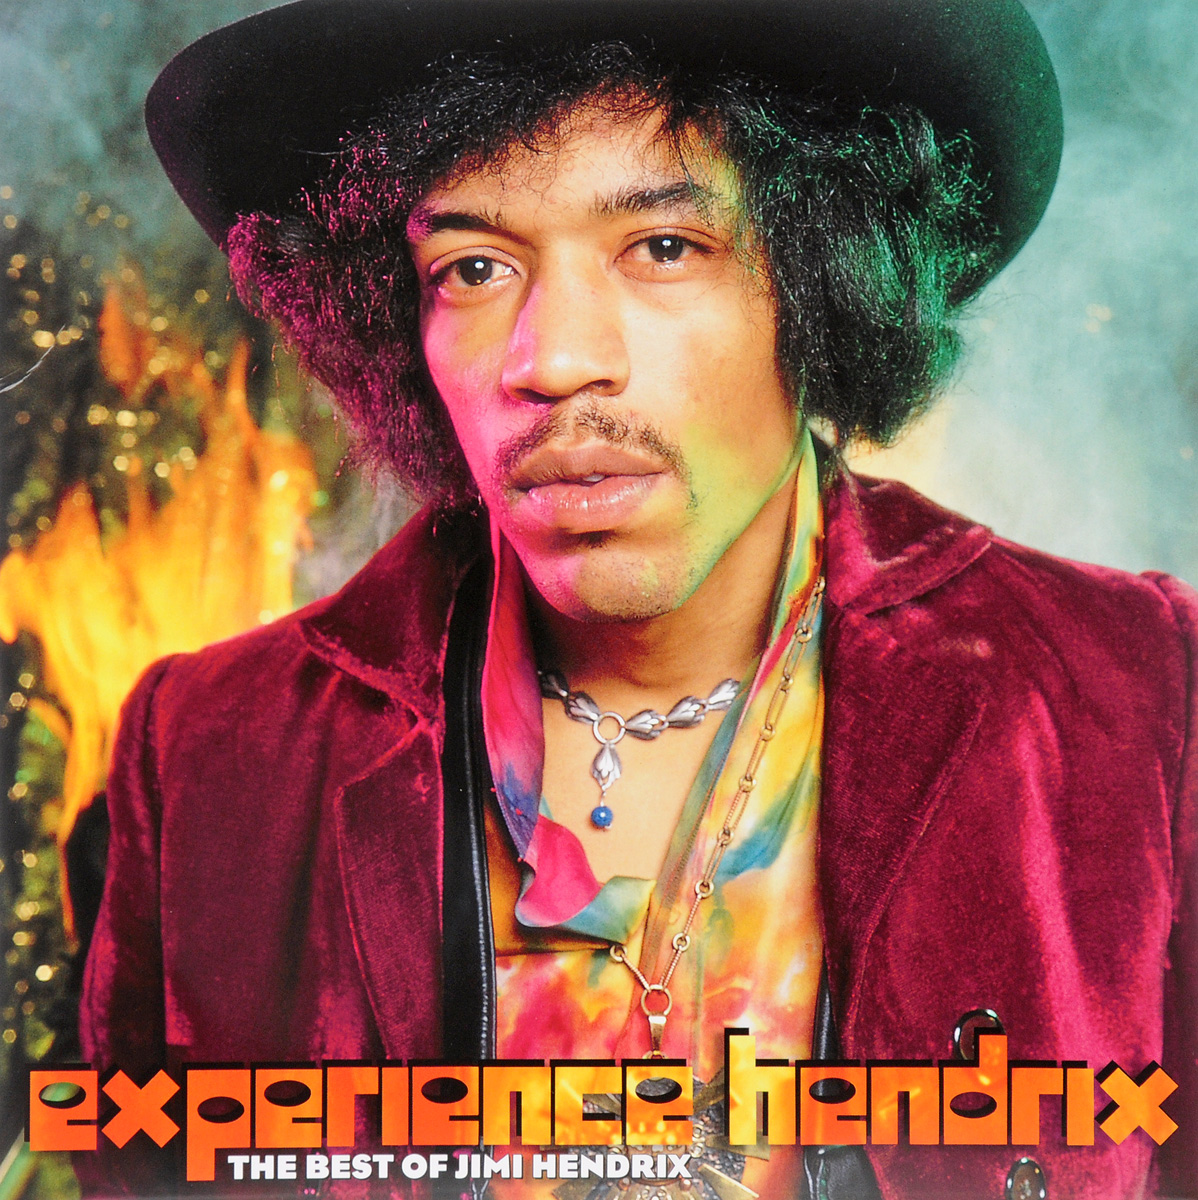 Джими Хендрикс Jimi Hendrix. Experience Hendrix. The Best Of Jimi Hendrix (2 LP) jimi hendrix jimi hendrix experience hendrix the best of jimi hendrix 2 lp